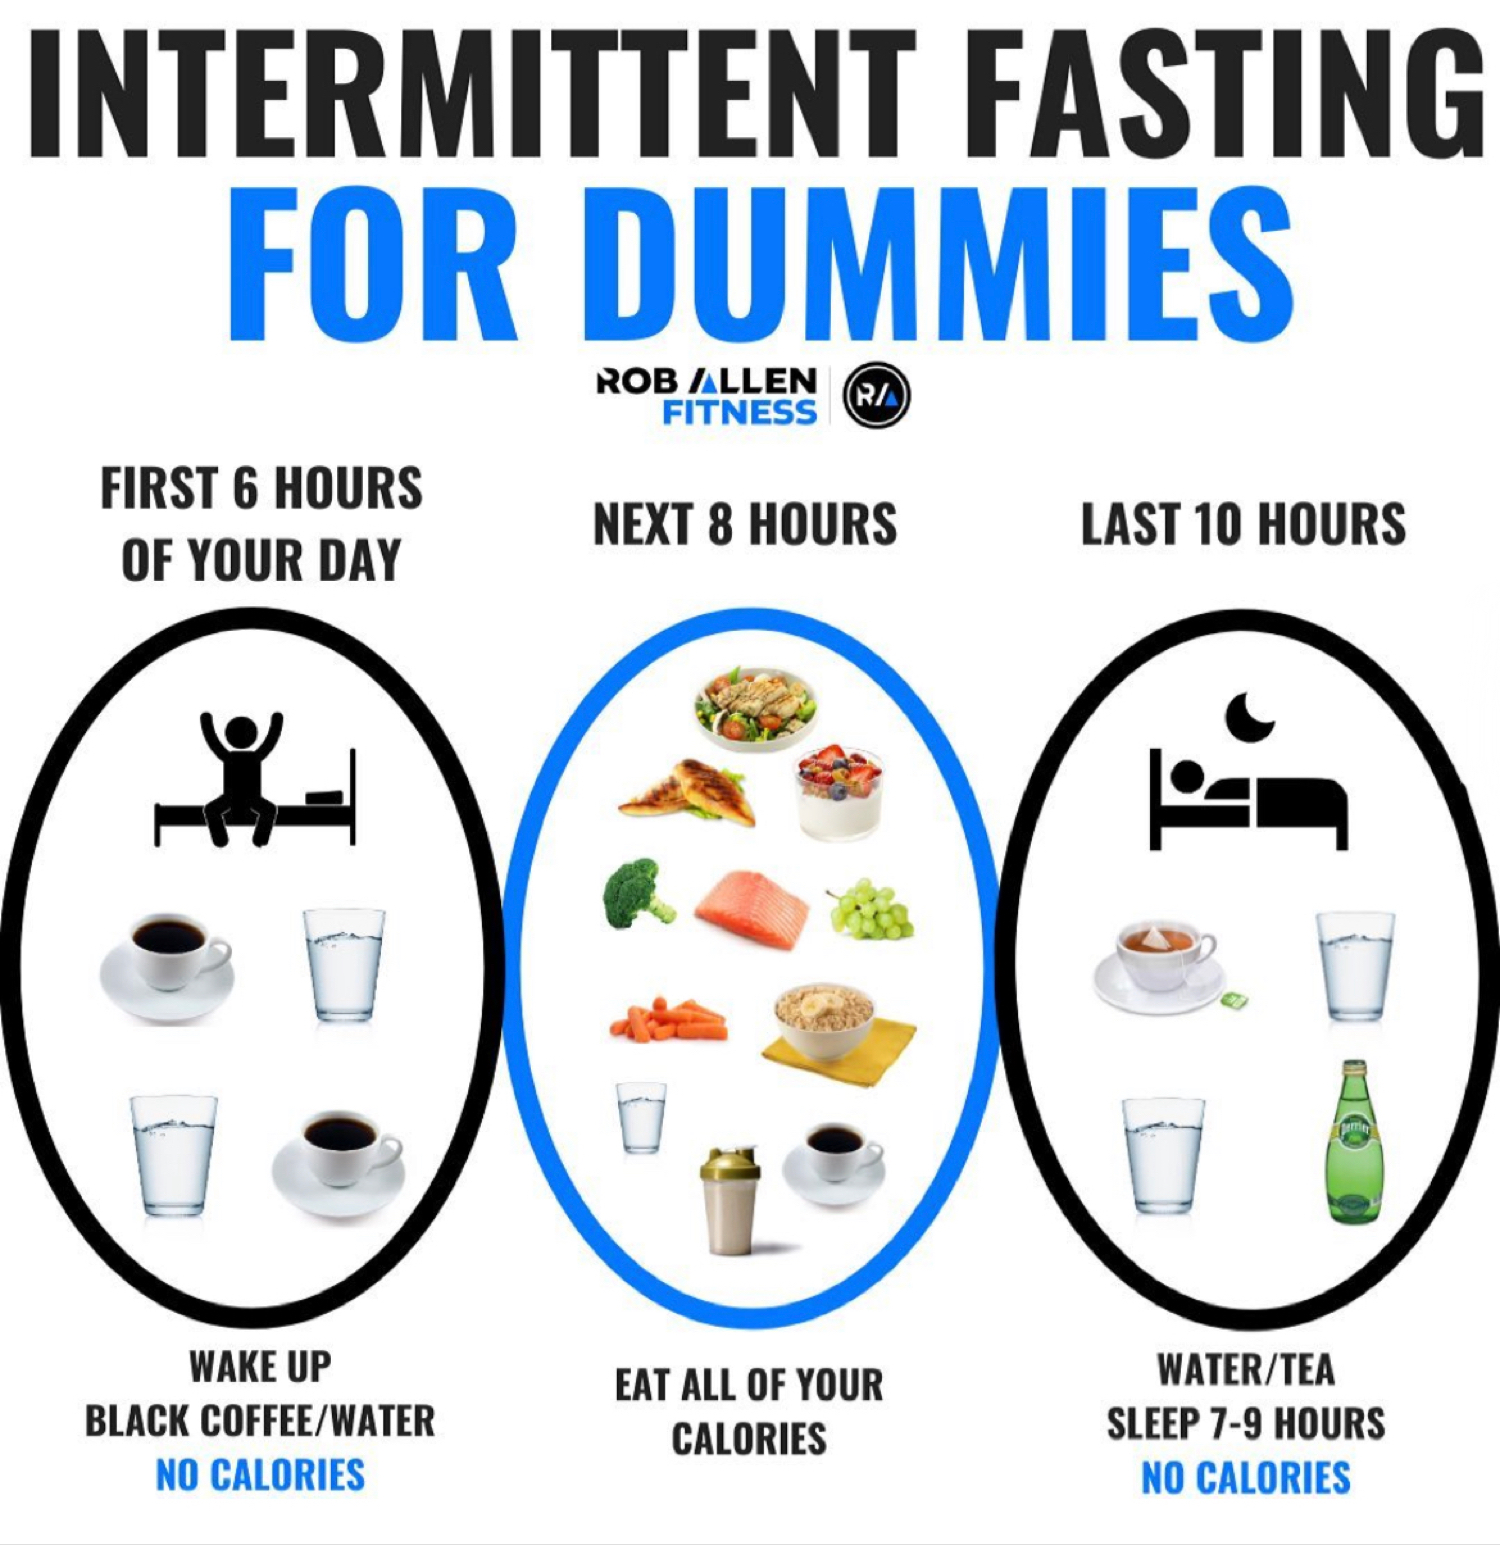 intermitten fasting chart, weight loss guide